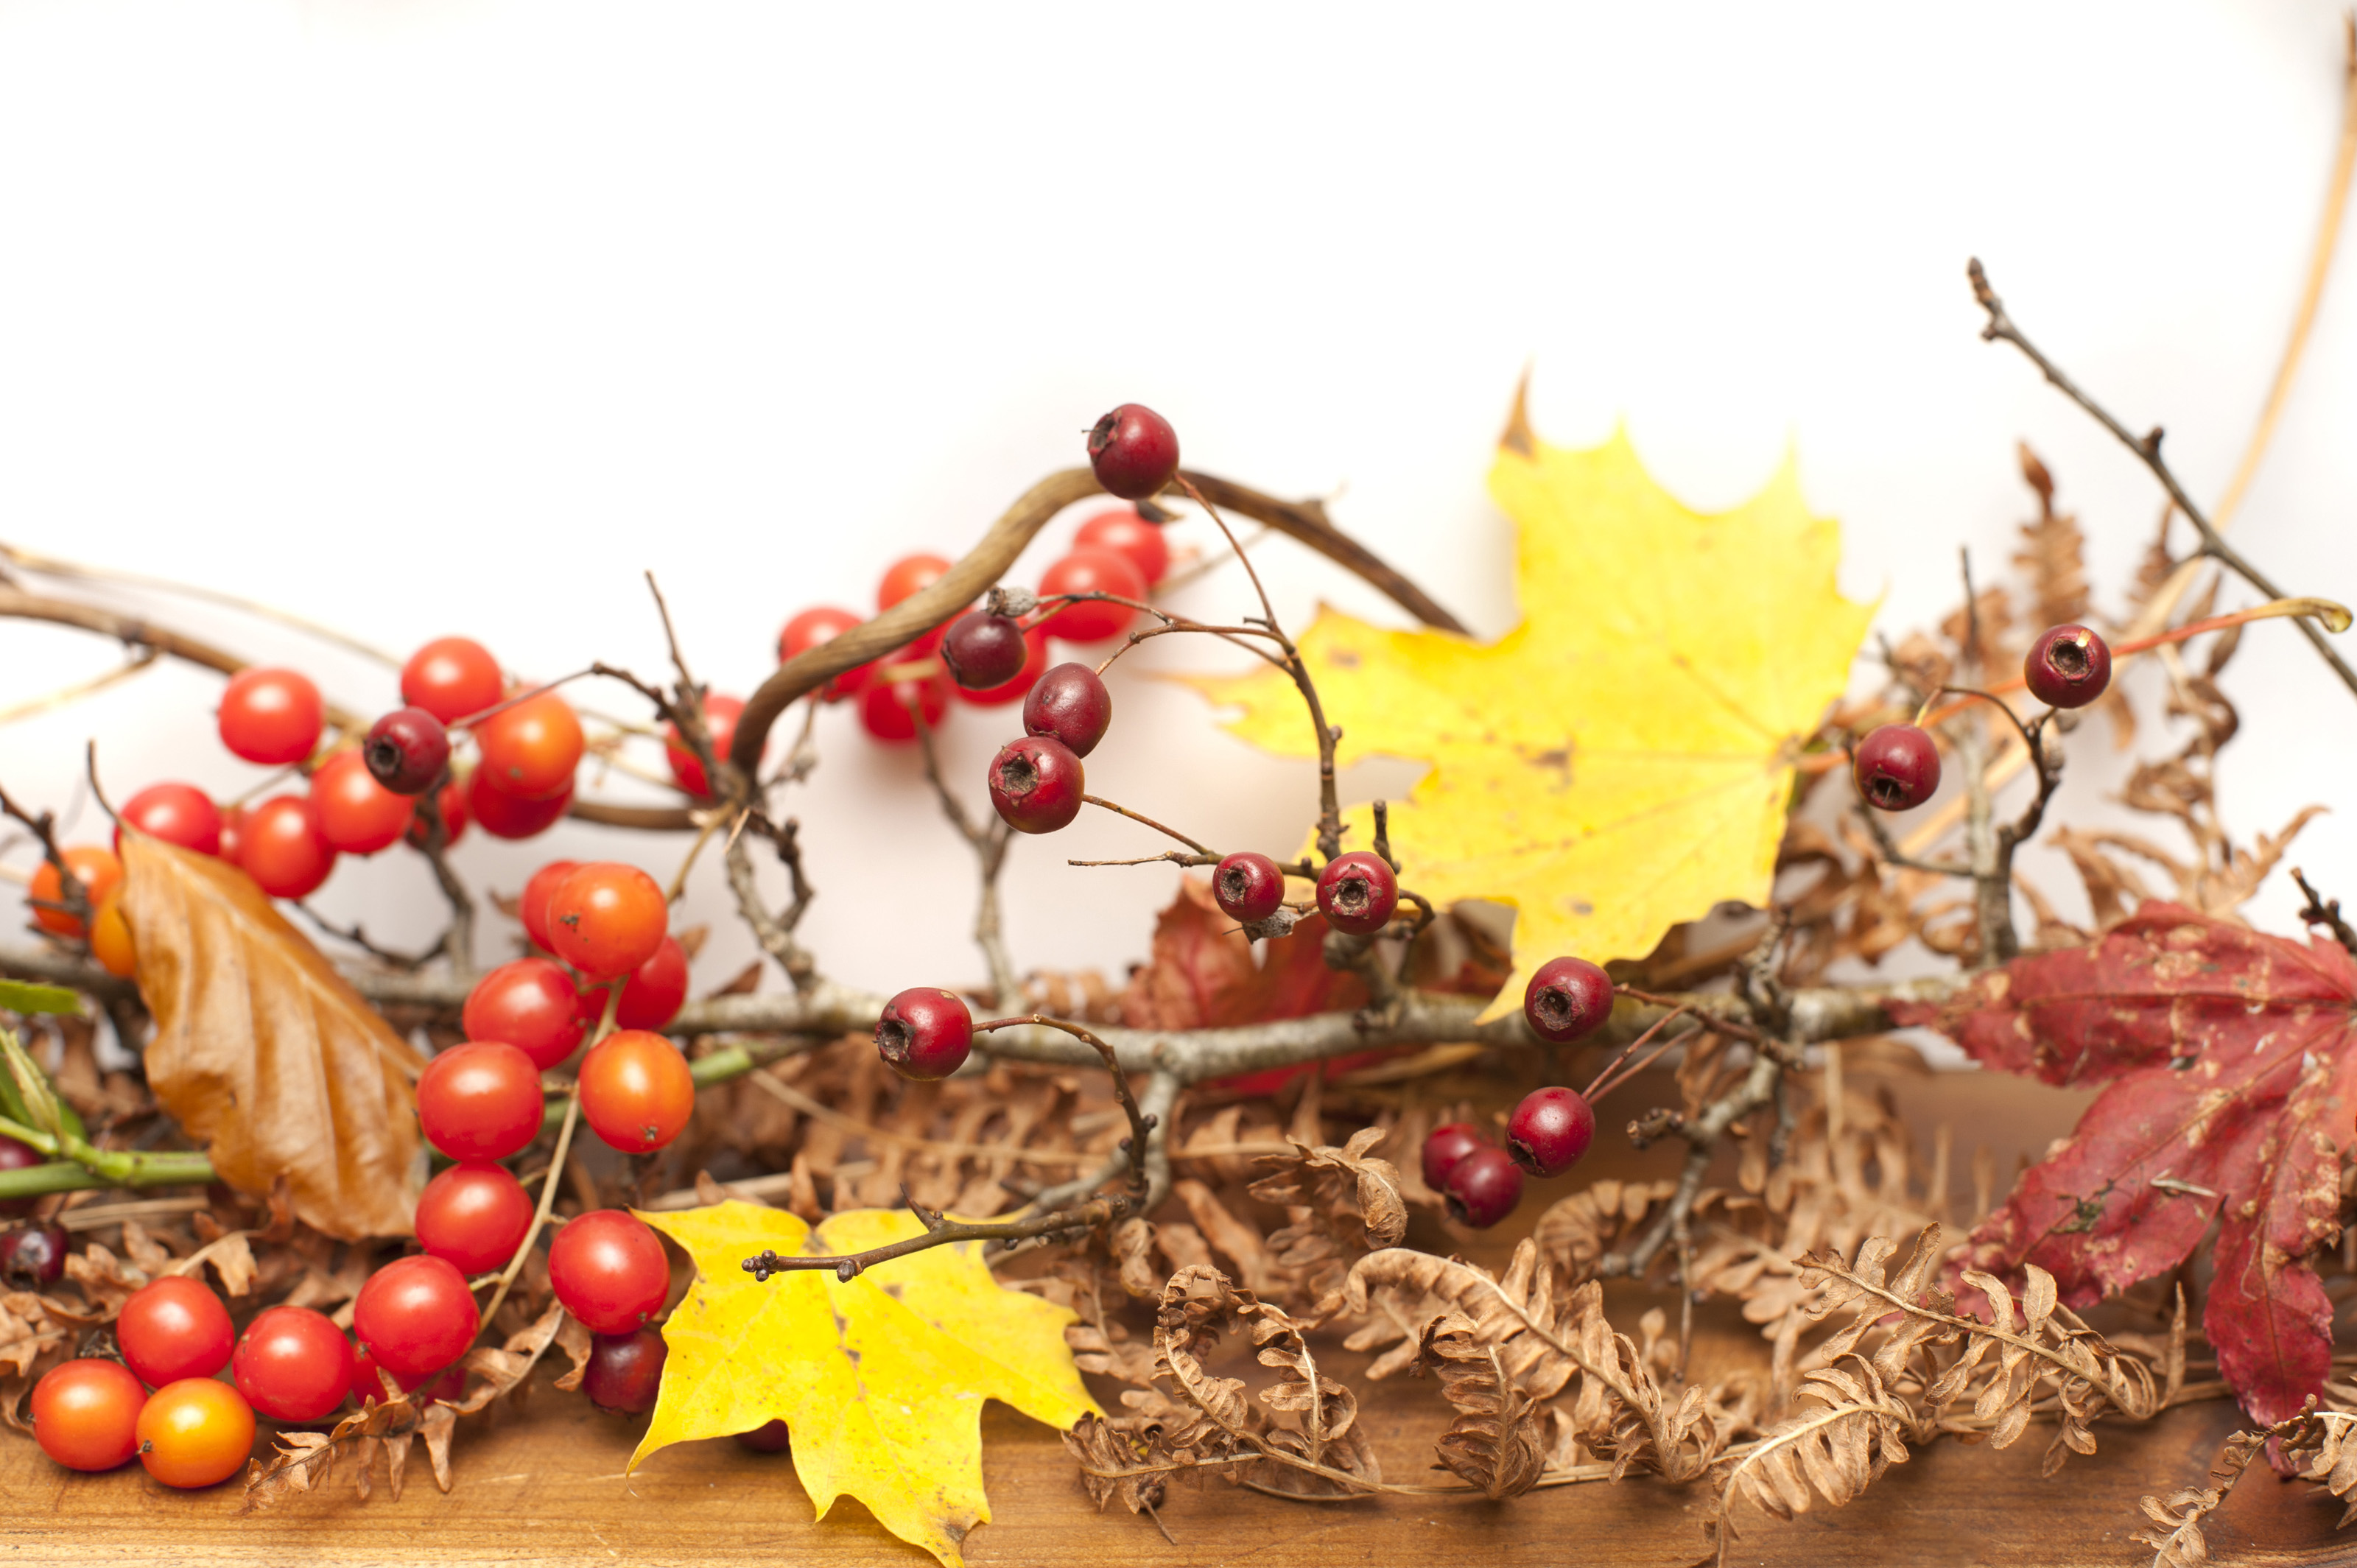 a display of autumn berries, leaves and foliage